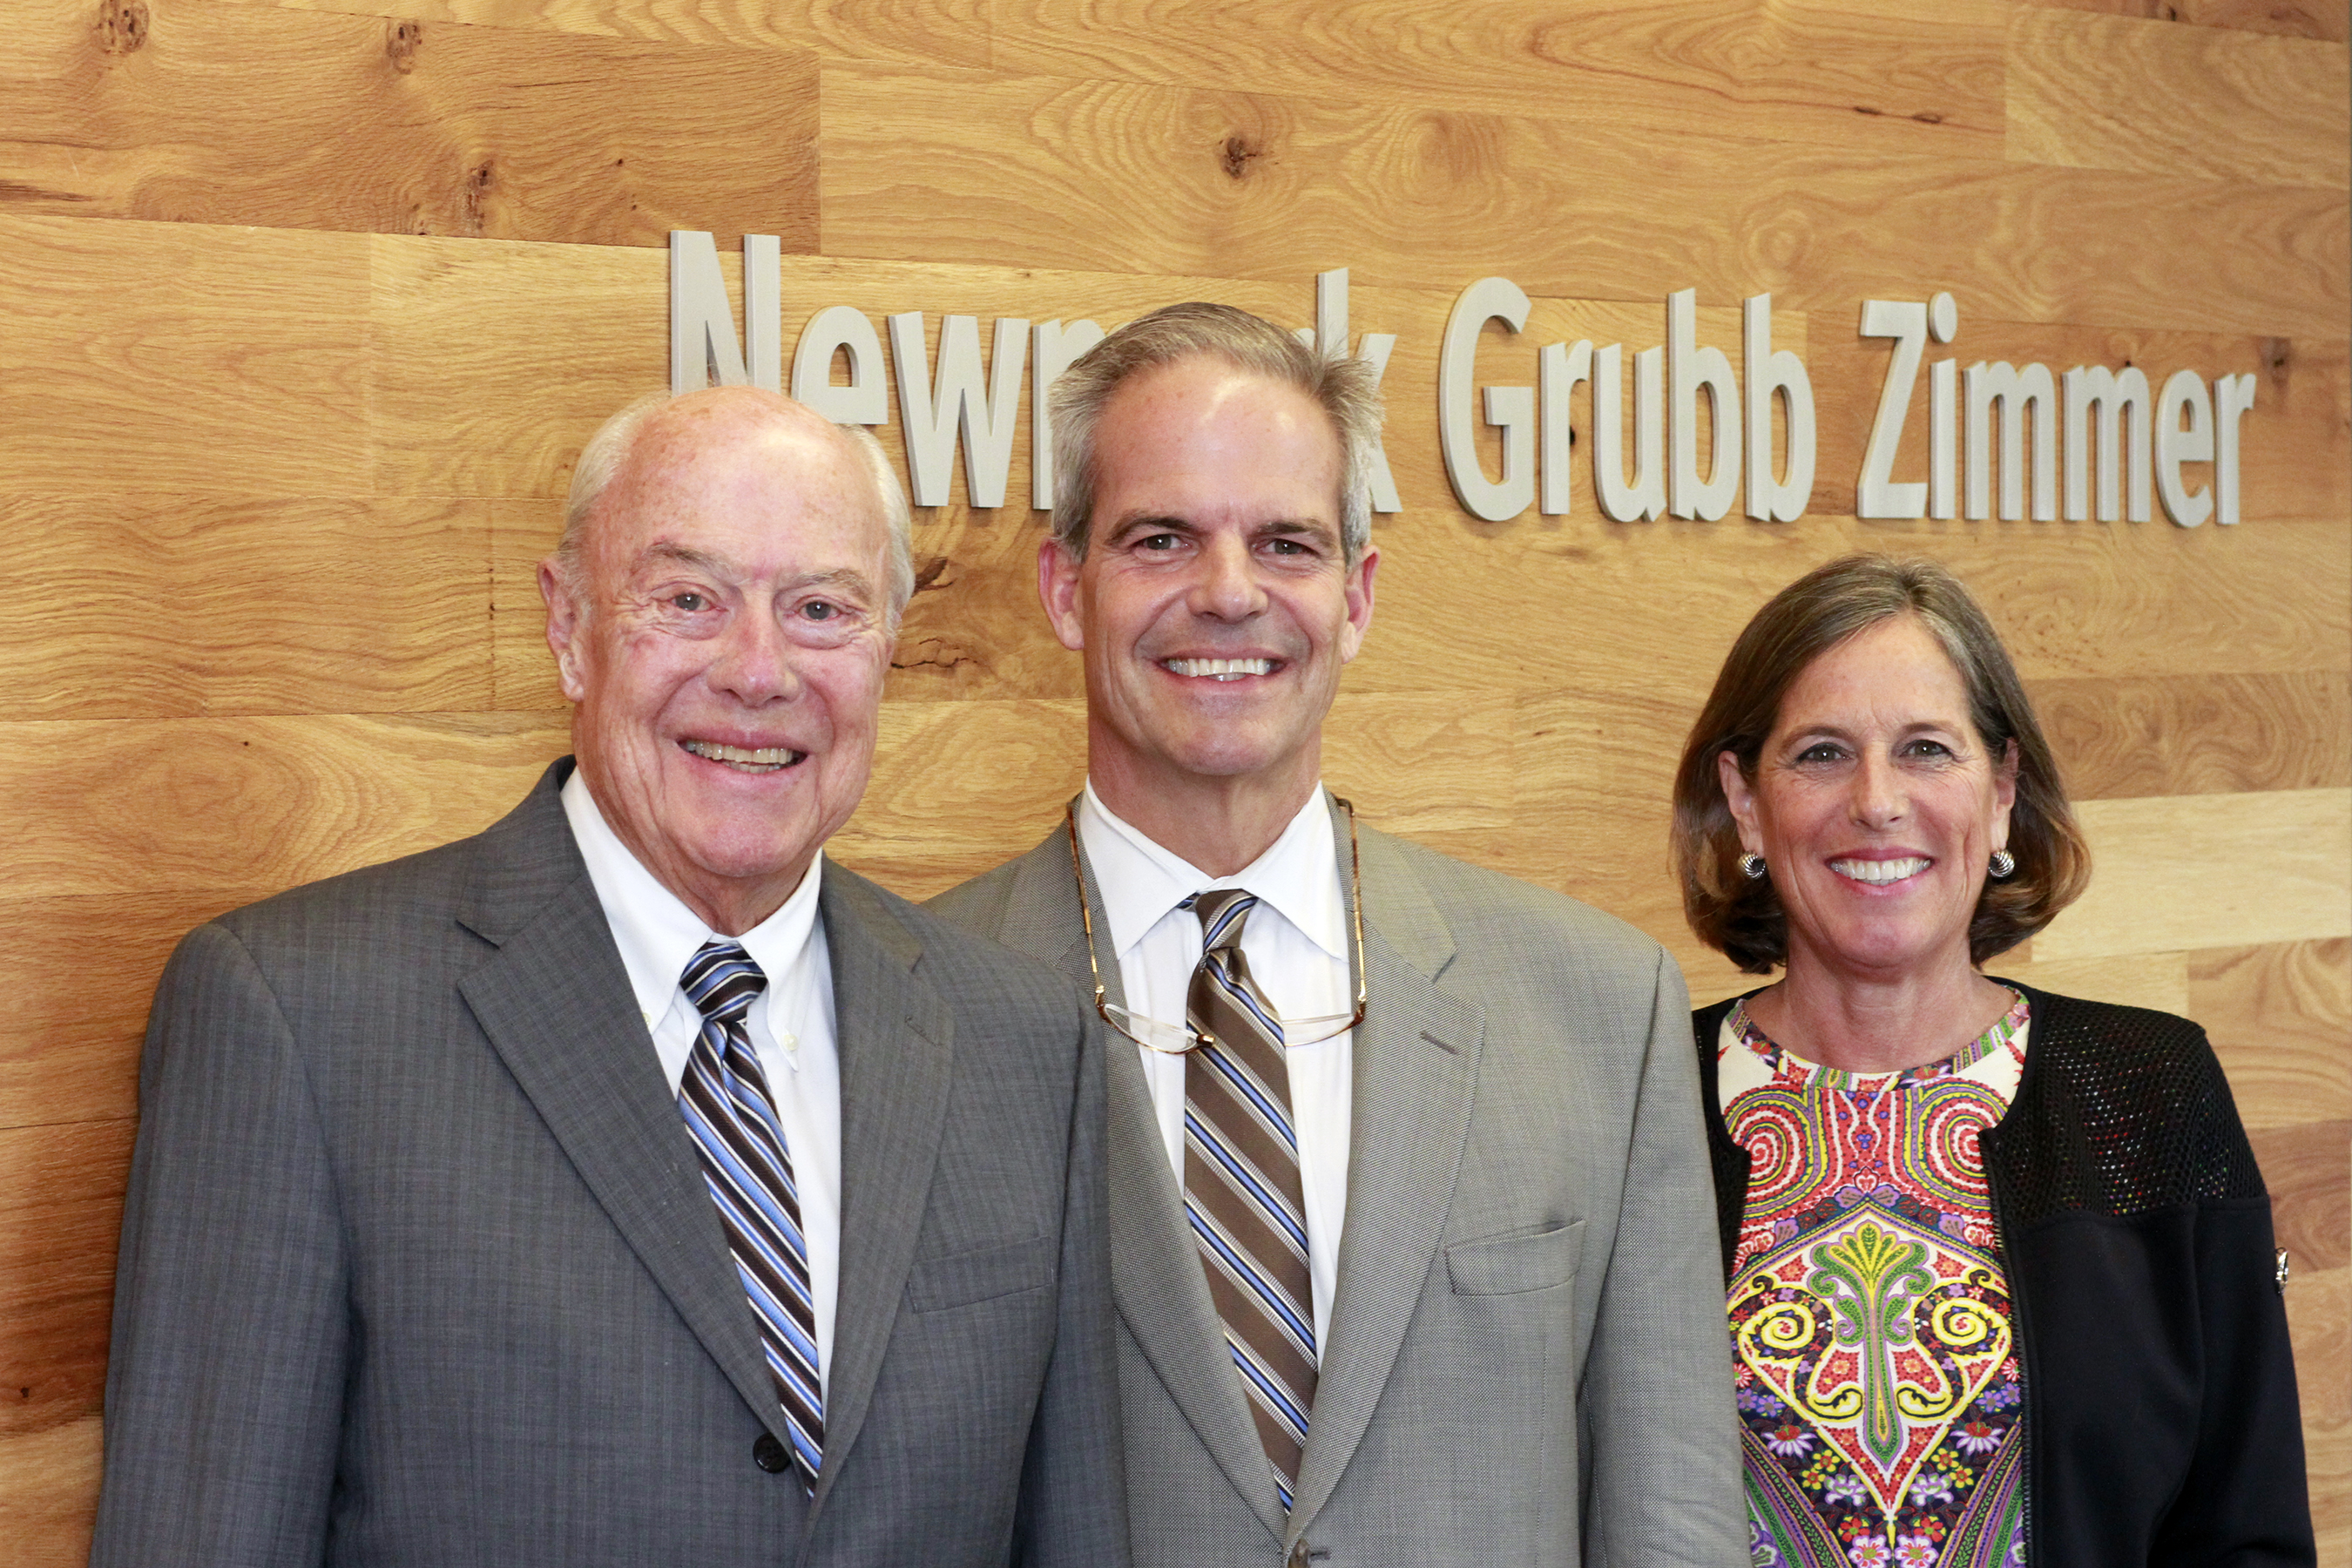 Business Leadership and Philanthropic Endeavors Yields Hall of Fame Award for Newmark Grubb Zimmer Family